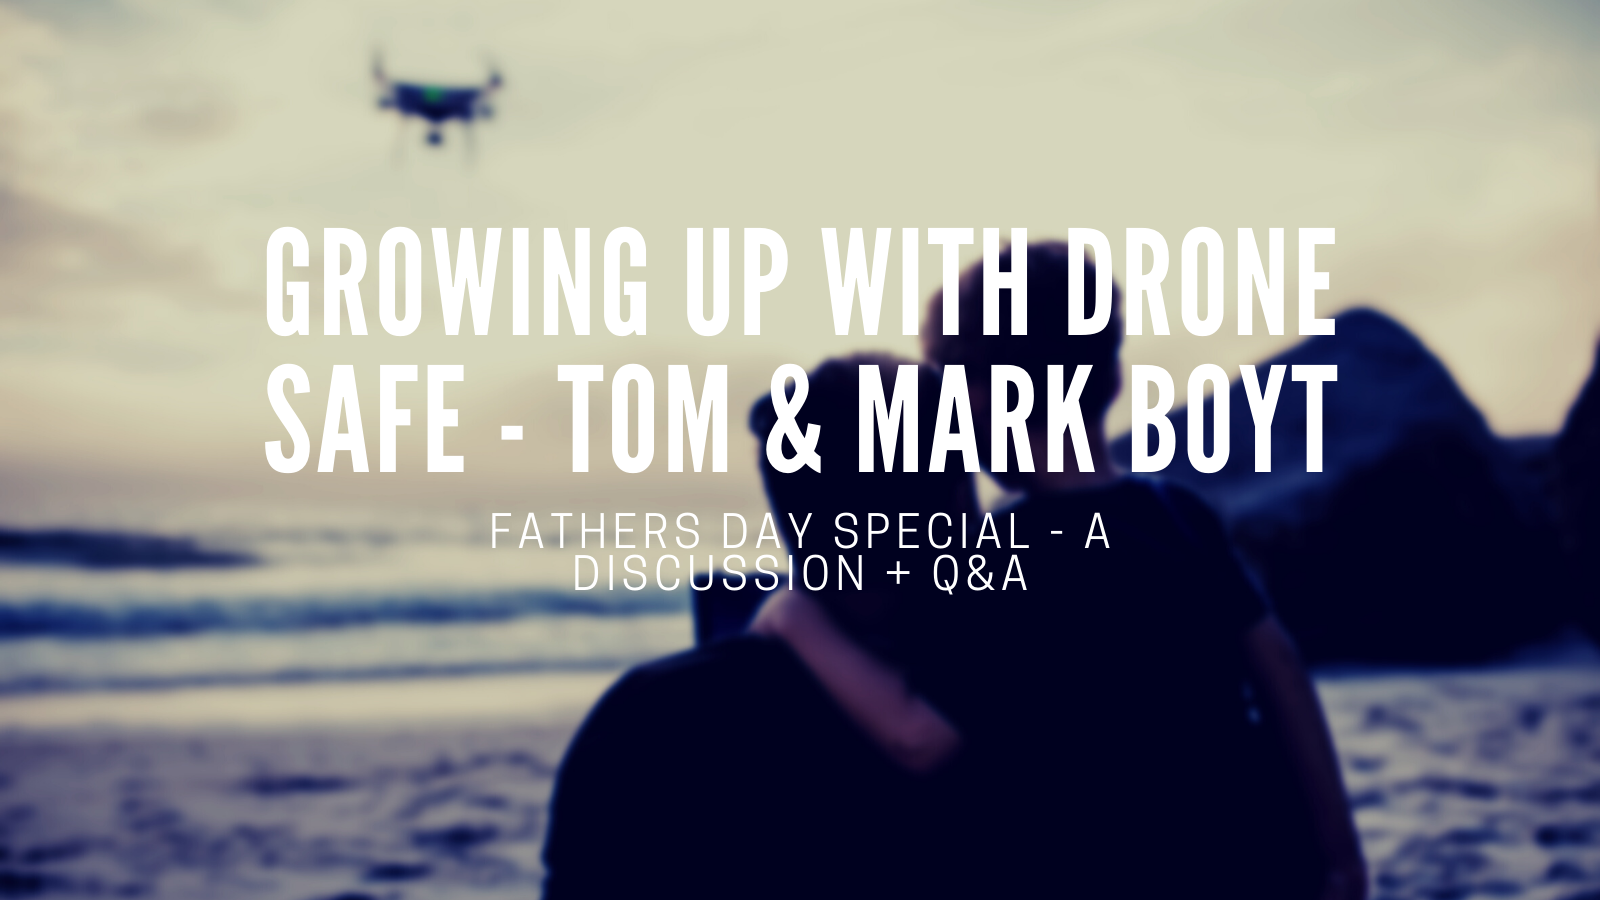 Fathers Day Special: Growing Up With Drone Safe - Tom & Mark Boyt